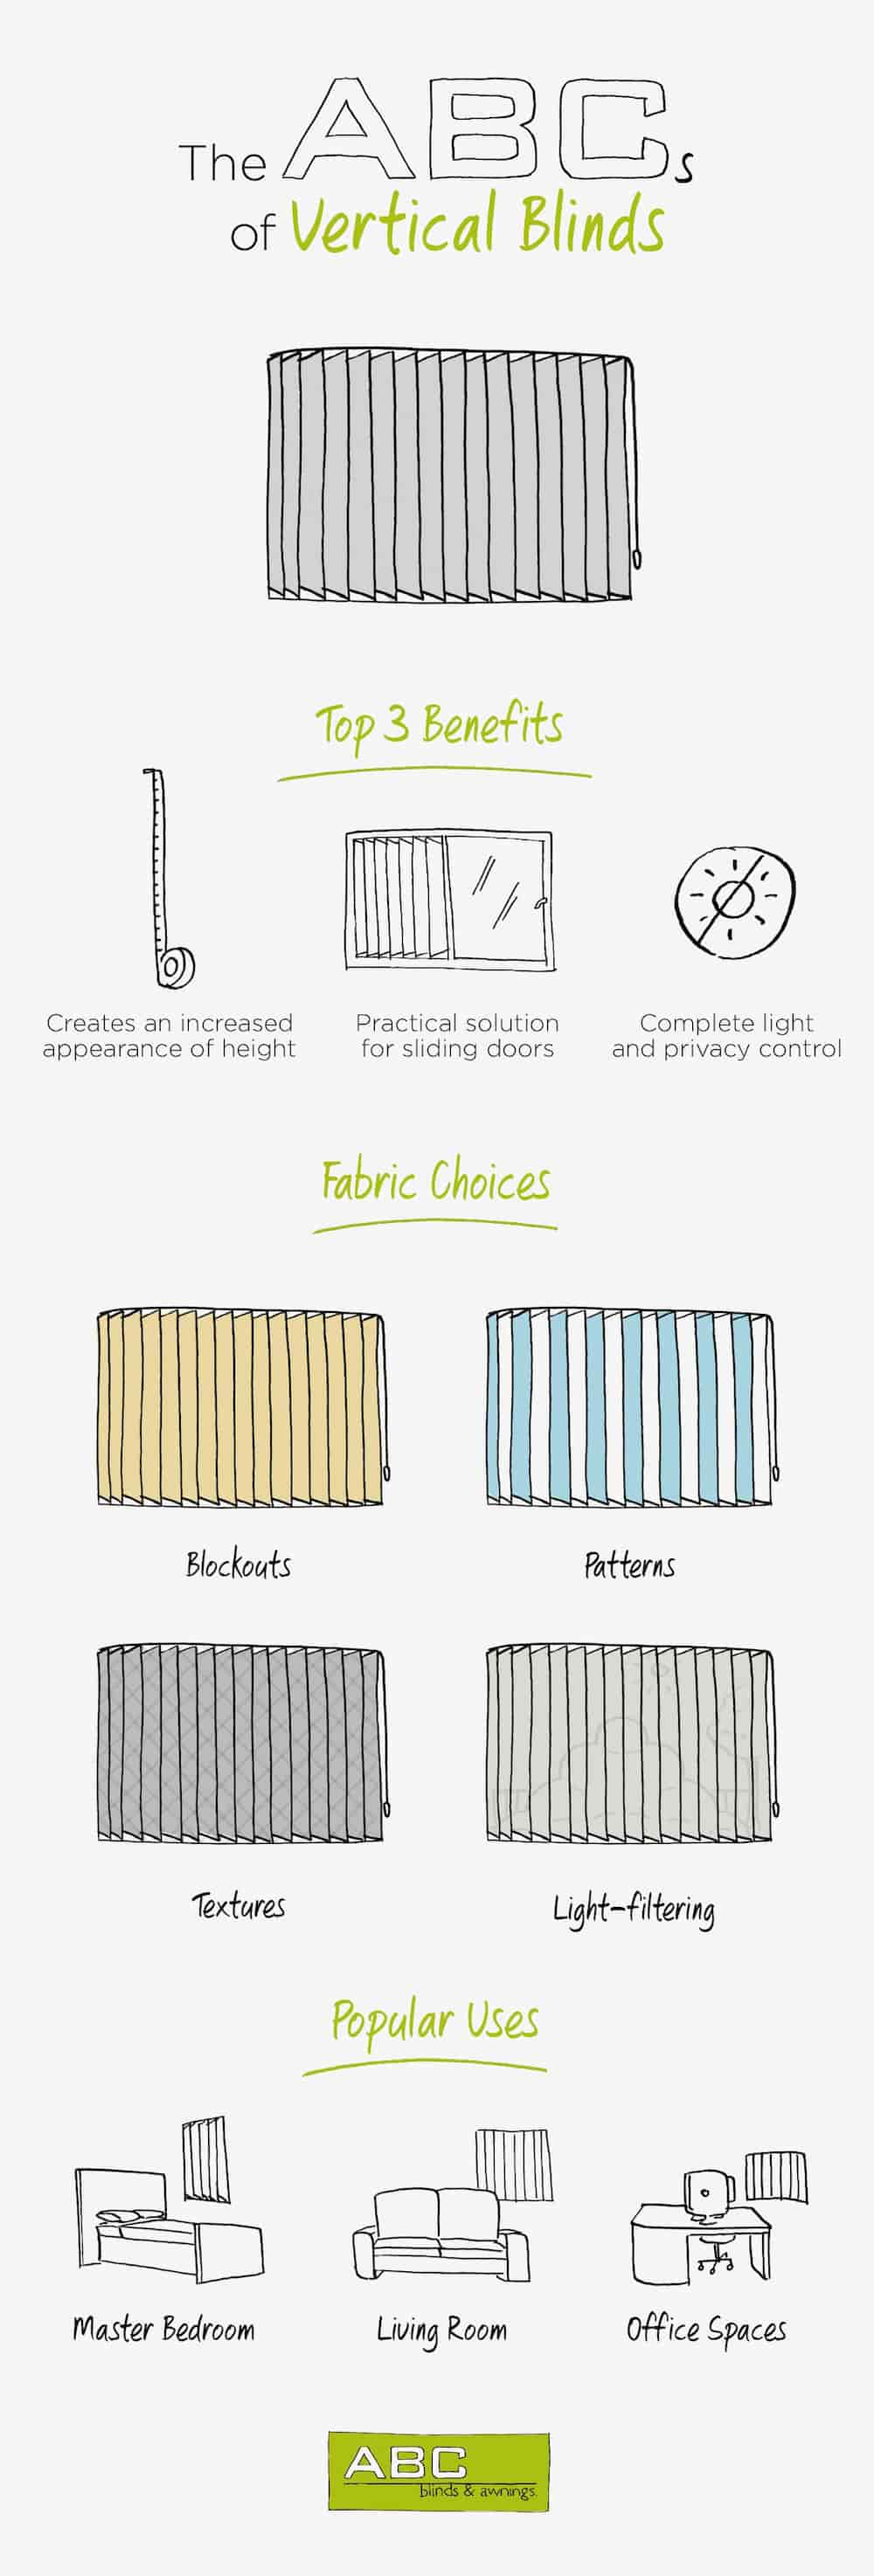 ABC's of Vertical Blinds